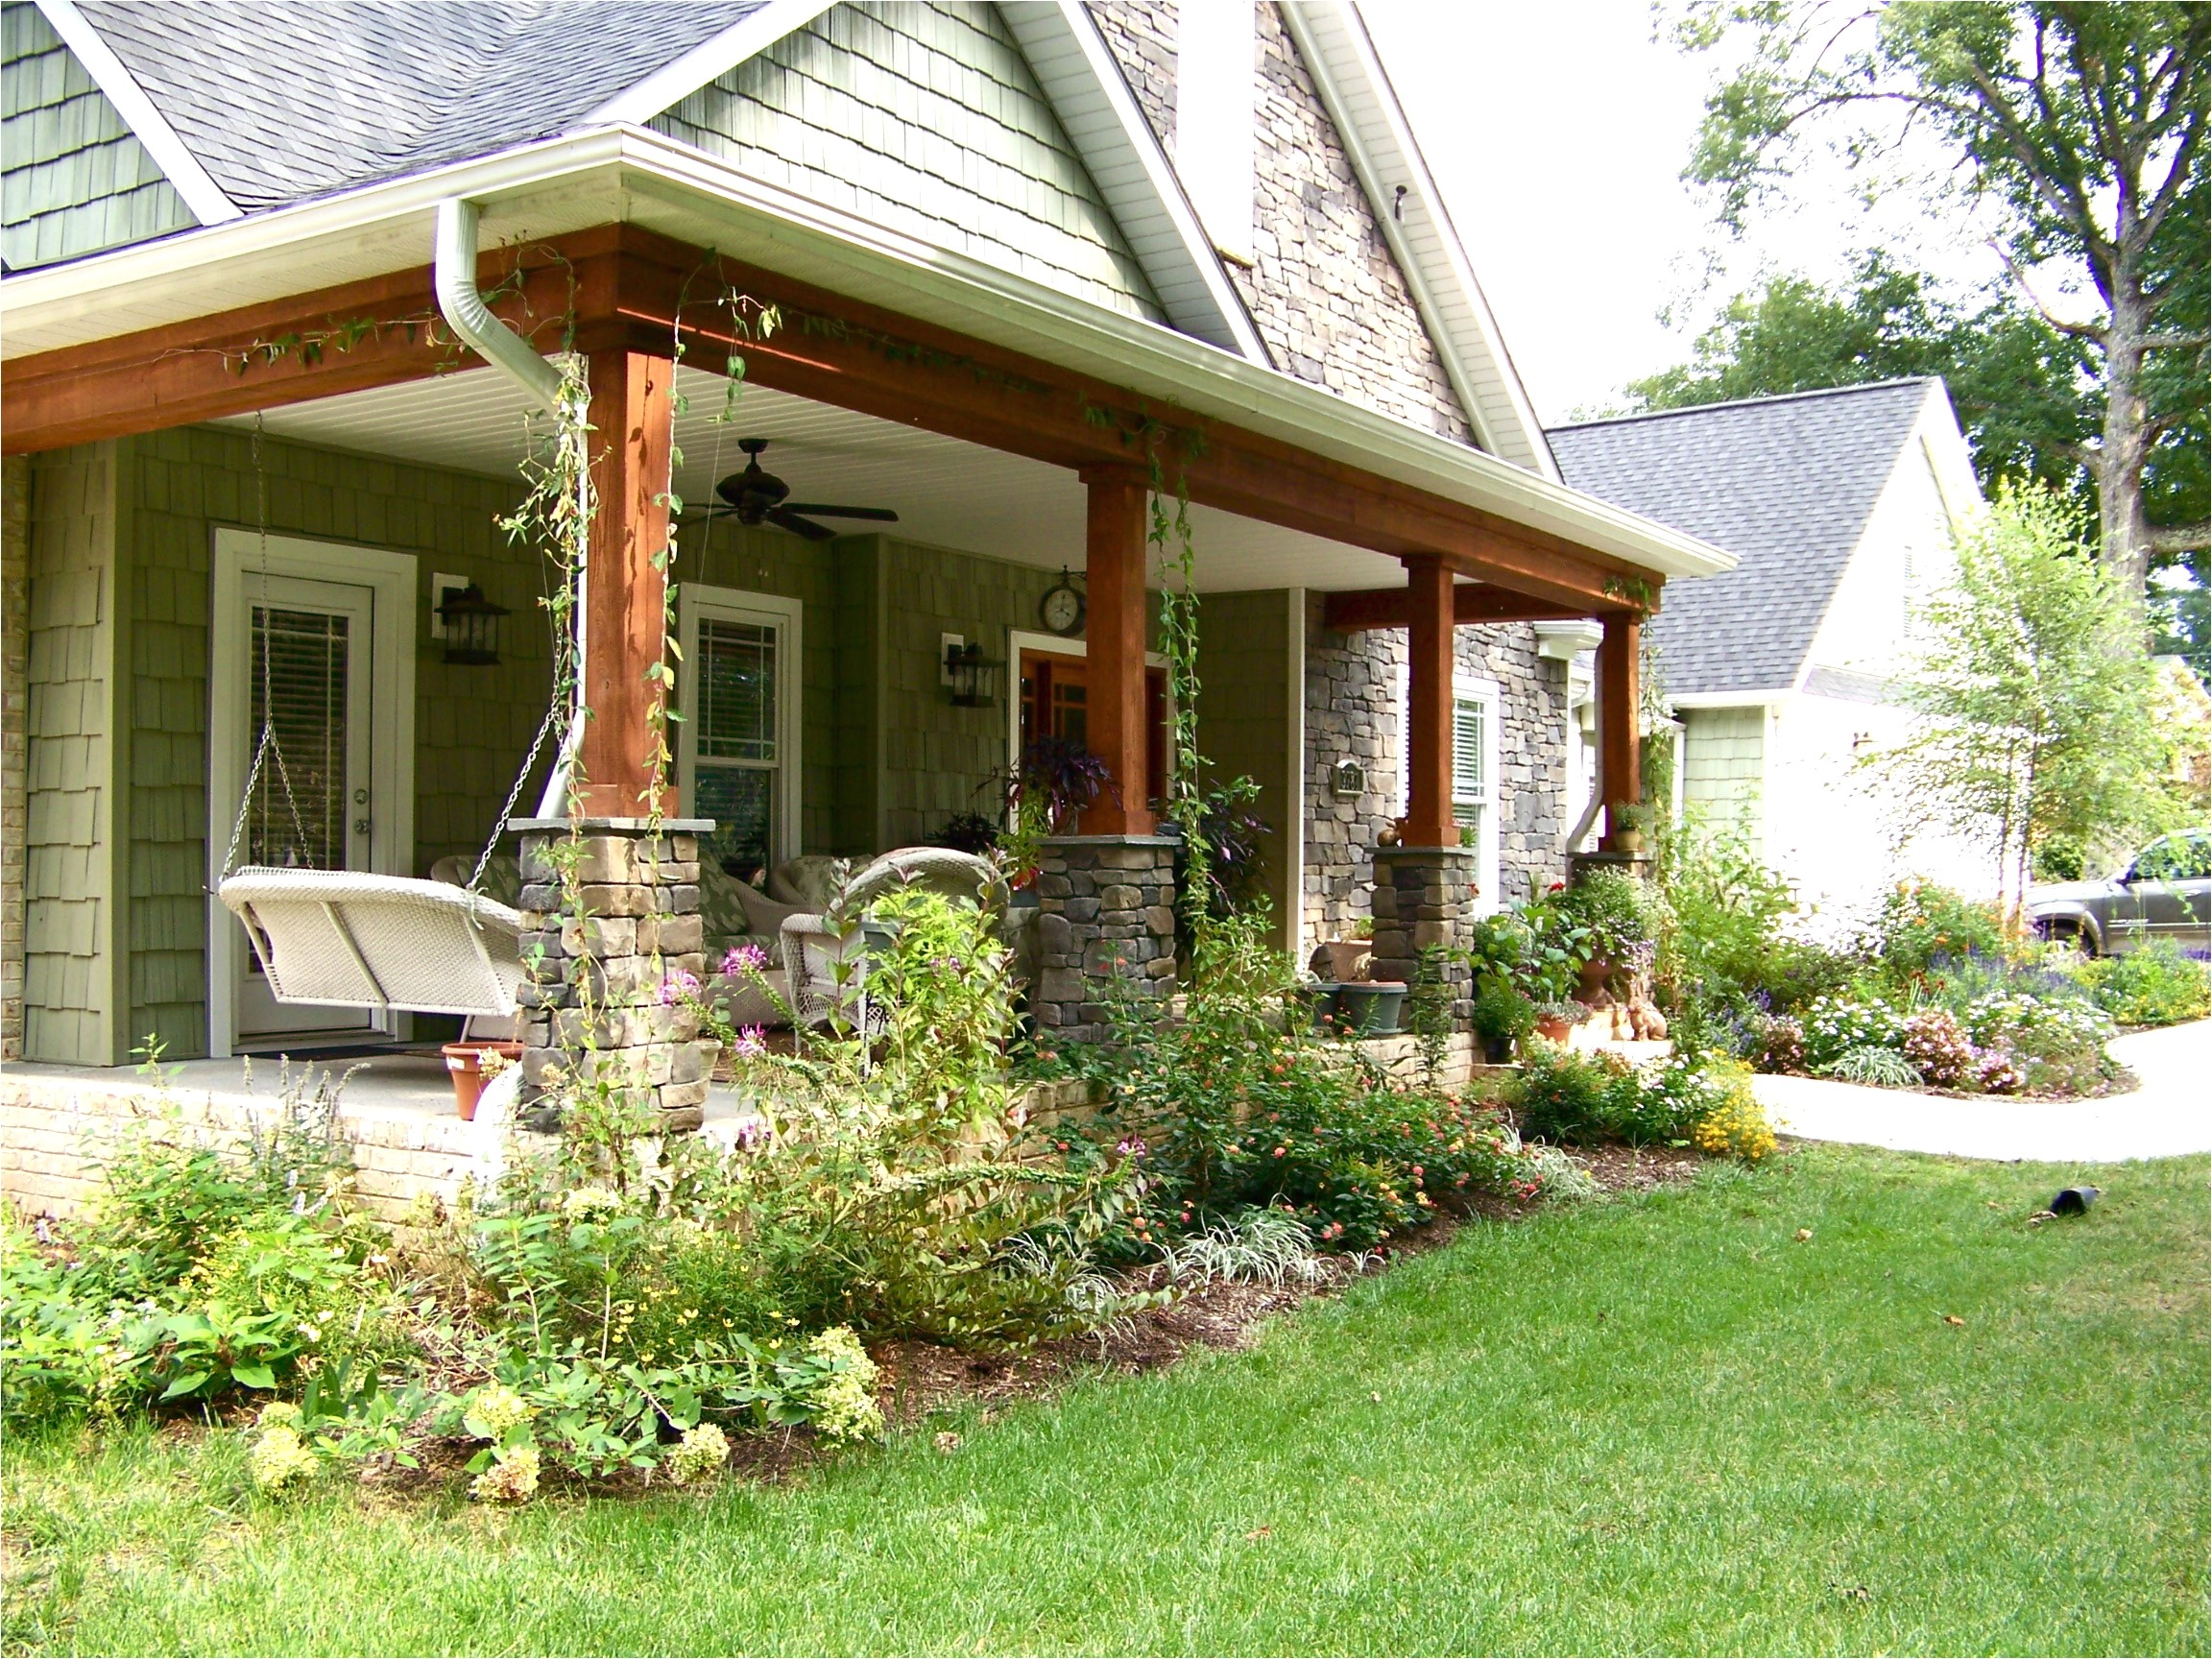 4660 pictures of front porches on ranch style homes